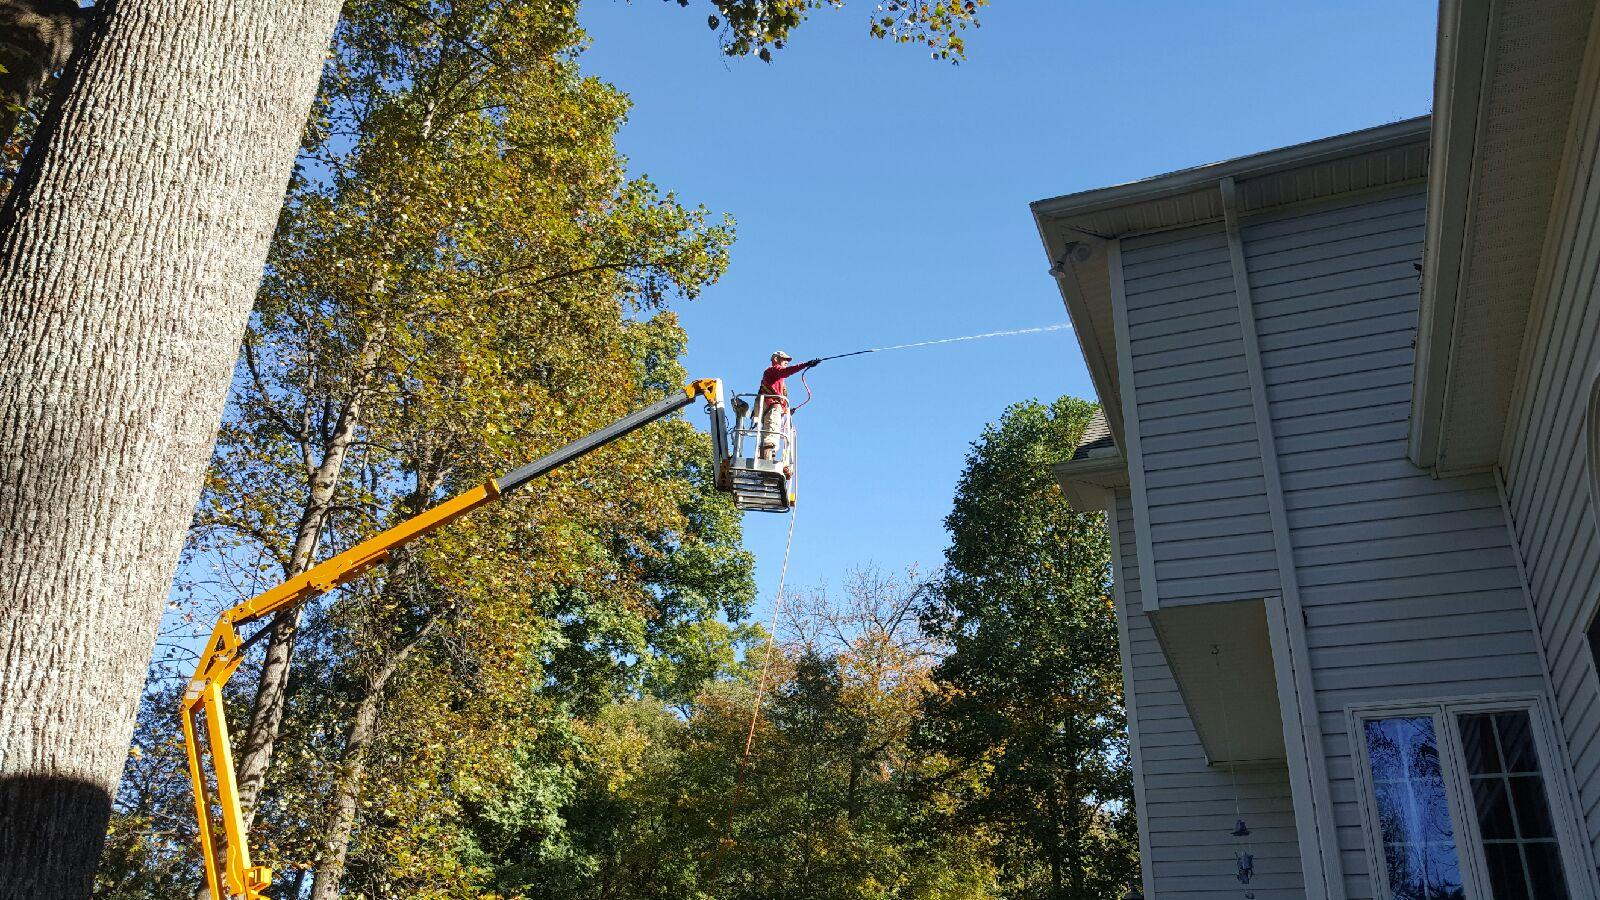 Boom Lift | Pressure Washing Contractor in Greencastle PA